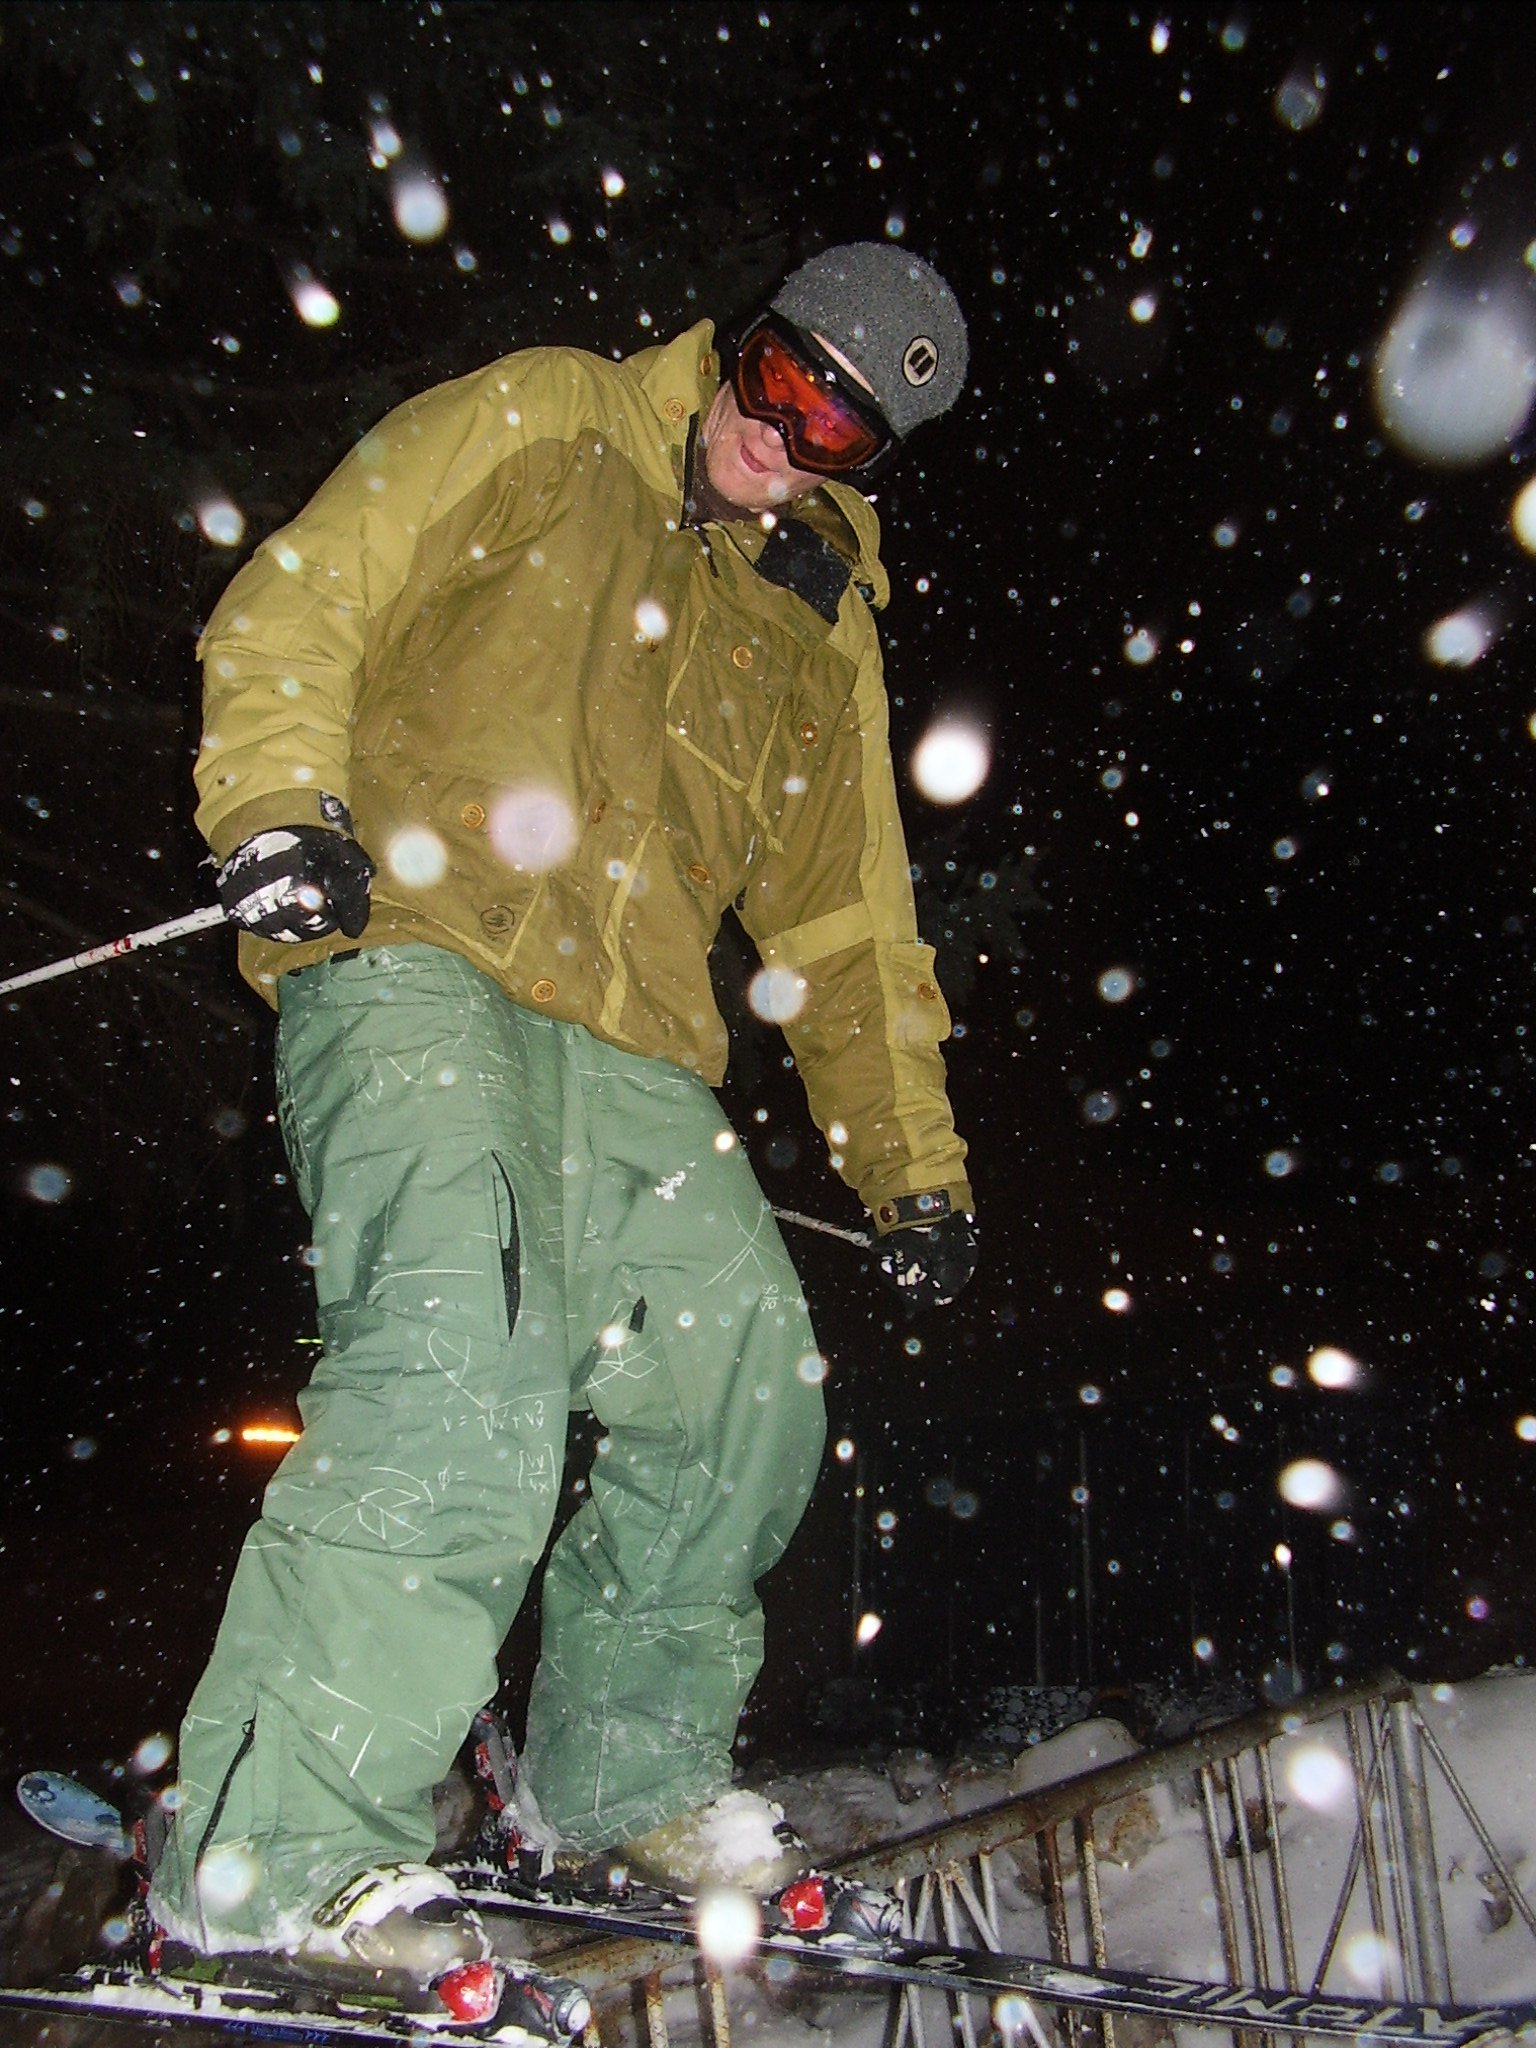 Tappin some more rail